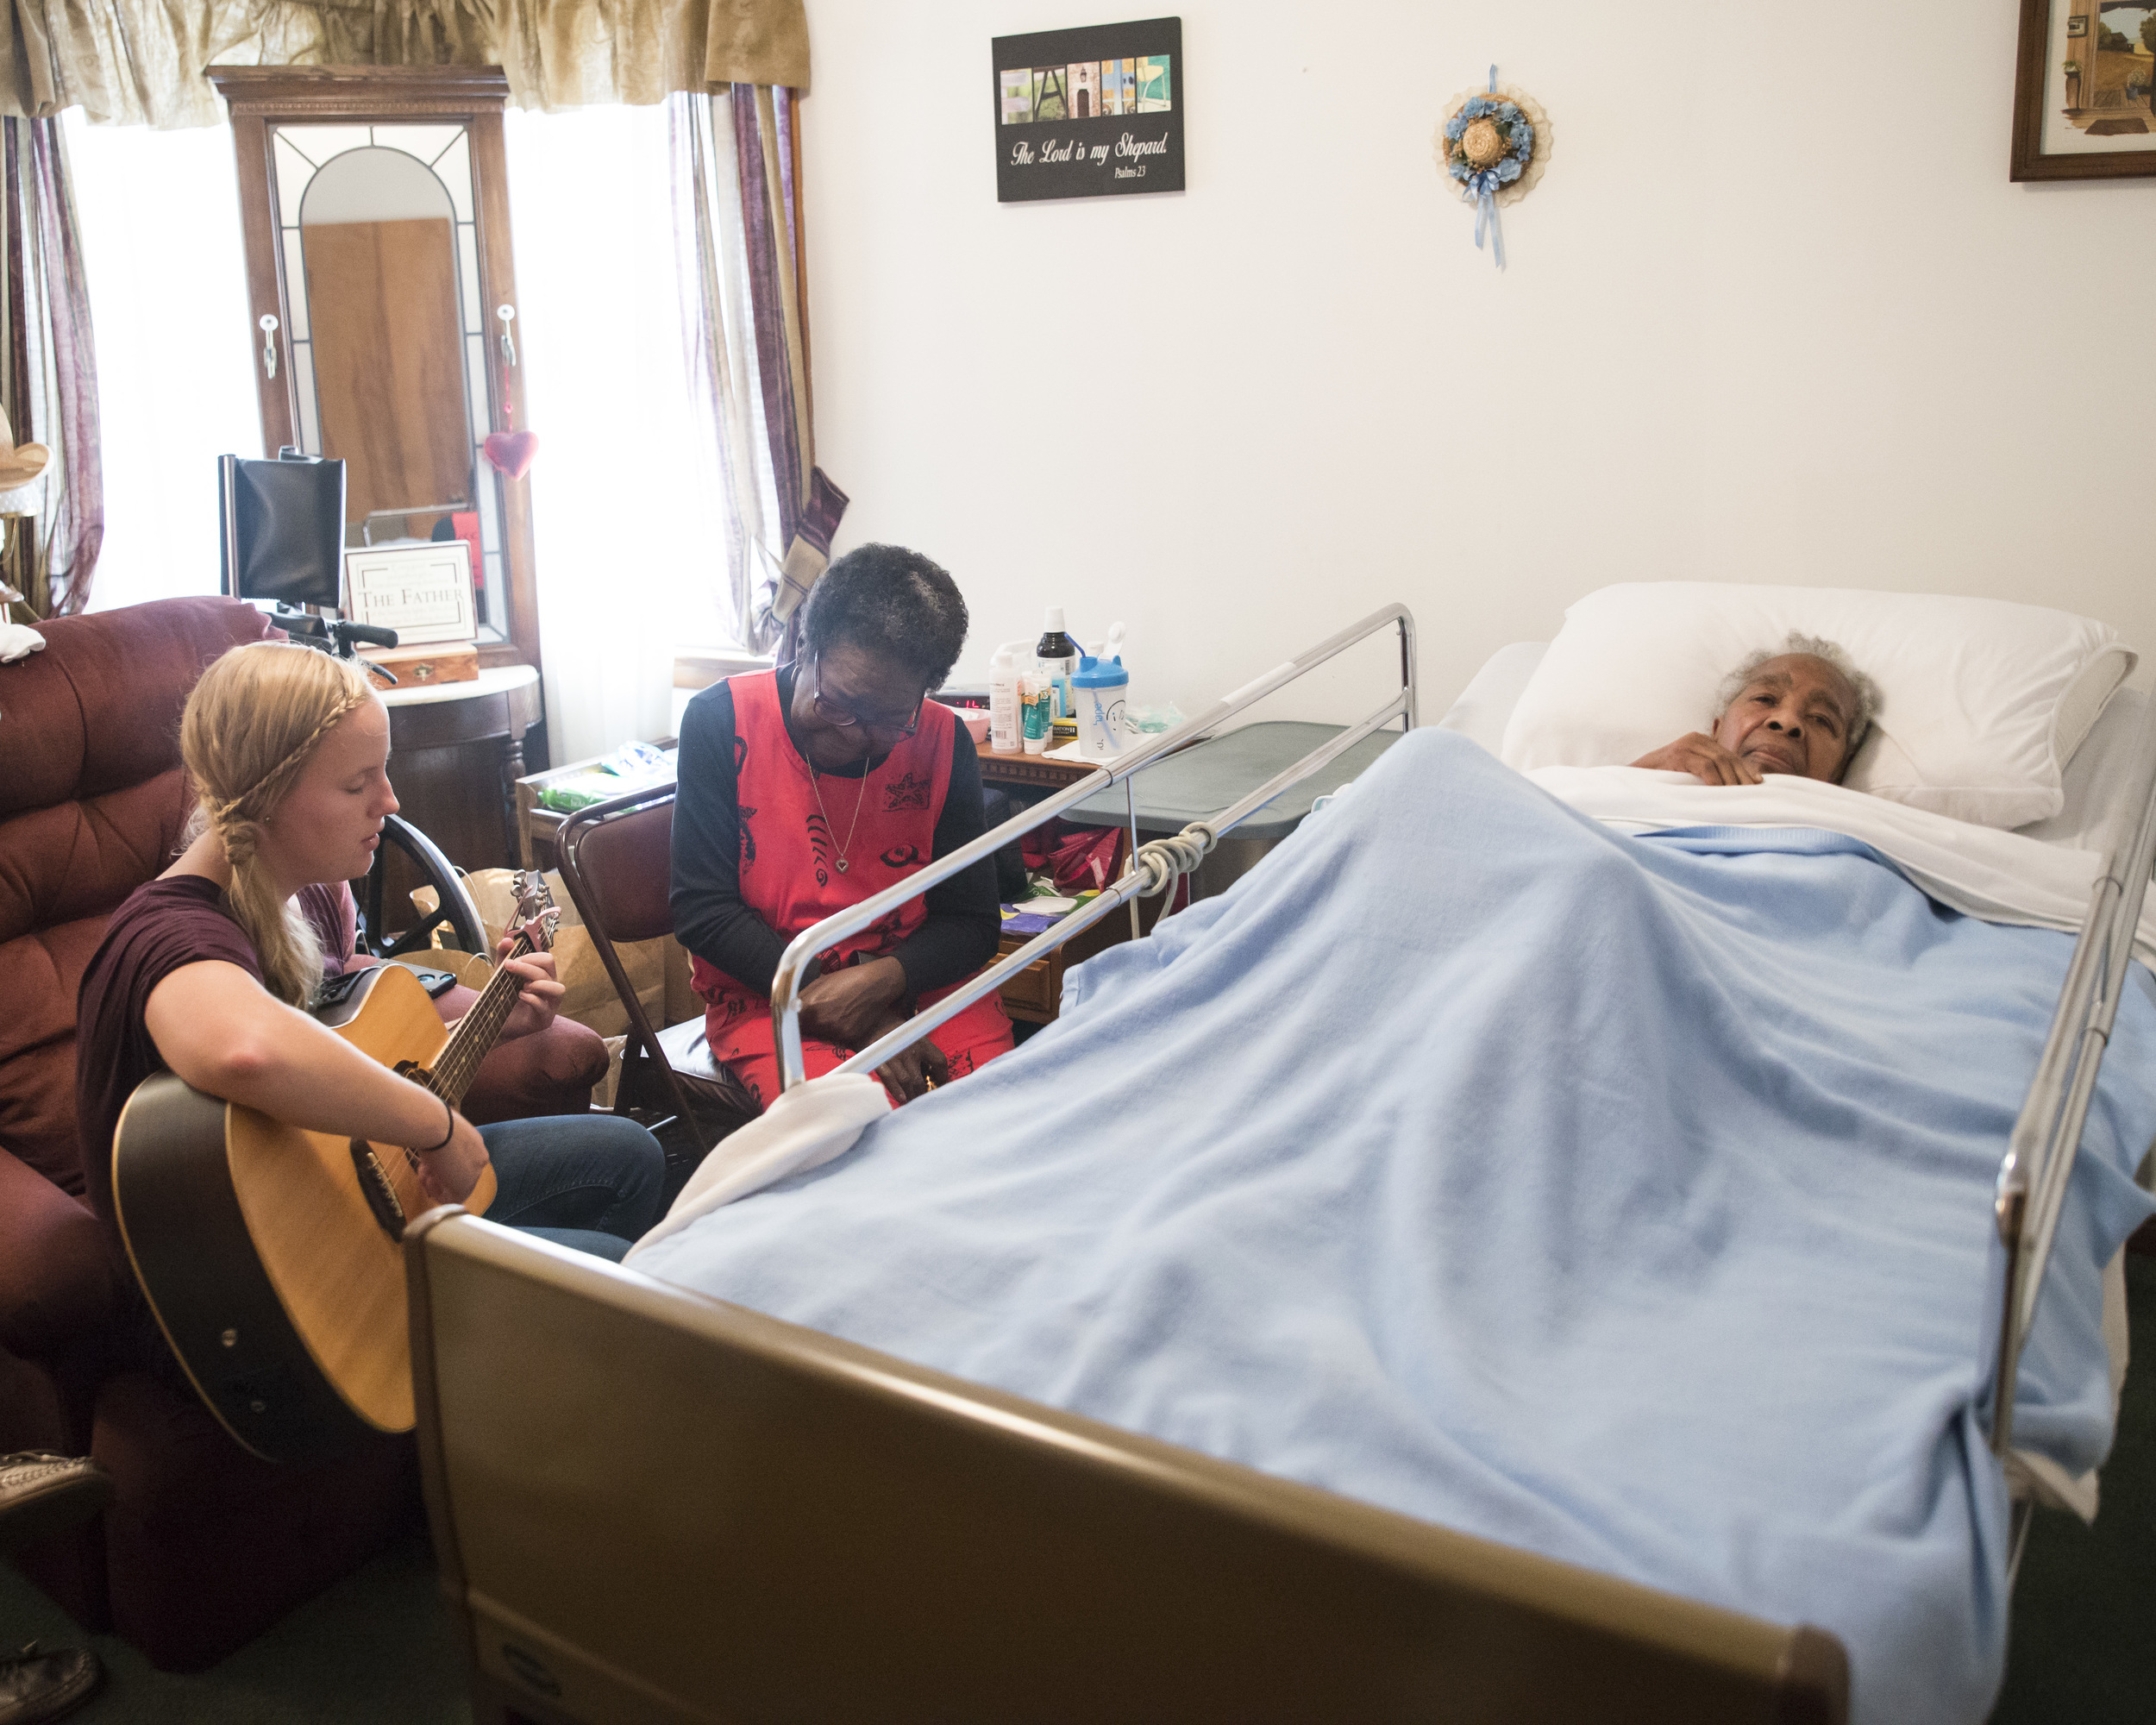 Anna Hastings, a student at the Institute for GOD, shares a song with one of our neighbors in Hopewell. Anna serves the elderly in Hopewell in a number of ways, and one of those ways is providing comfort through music.